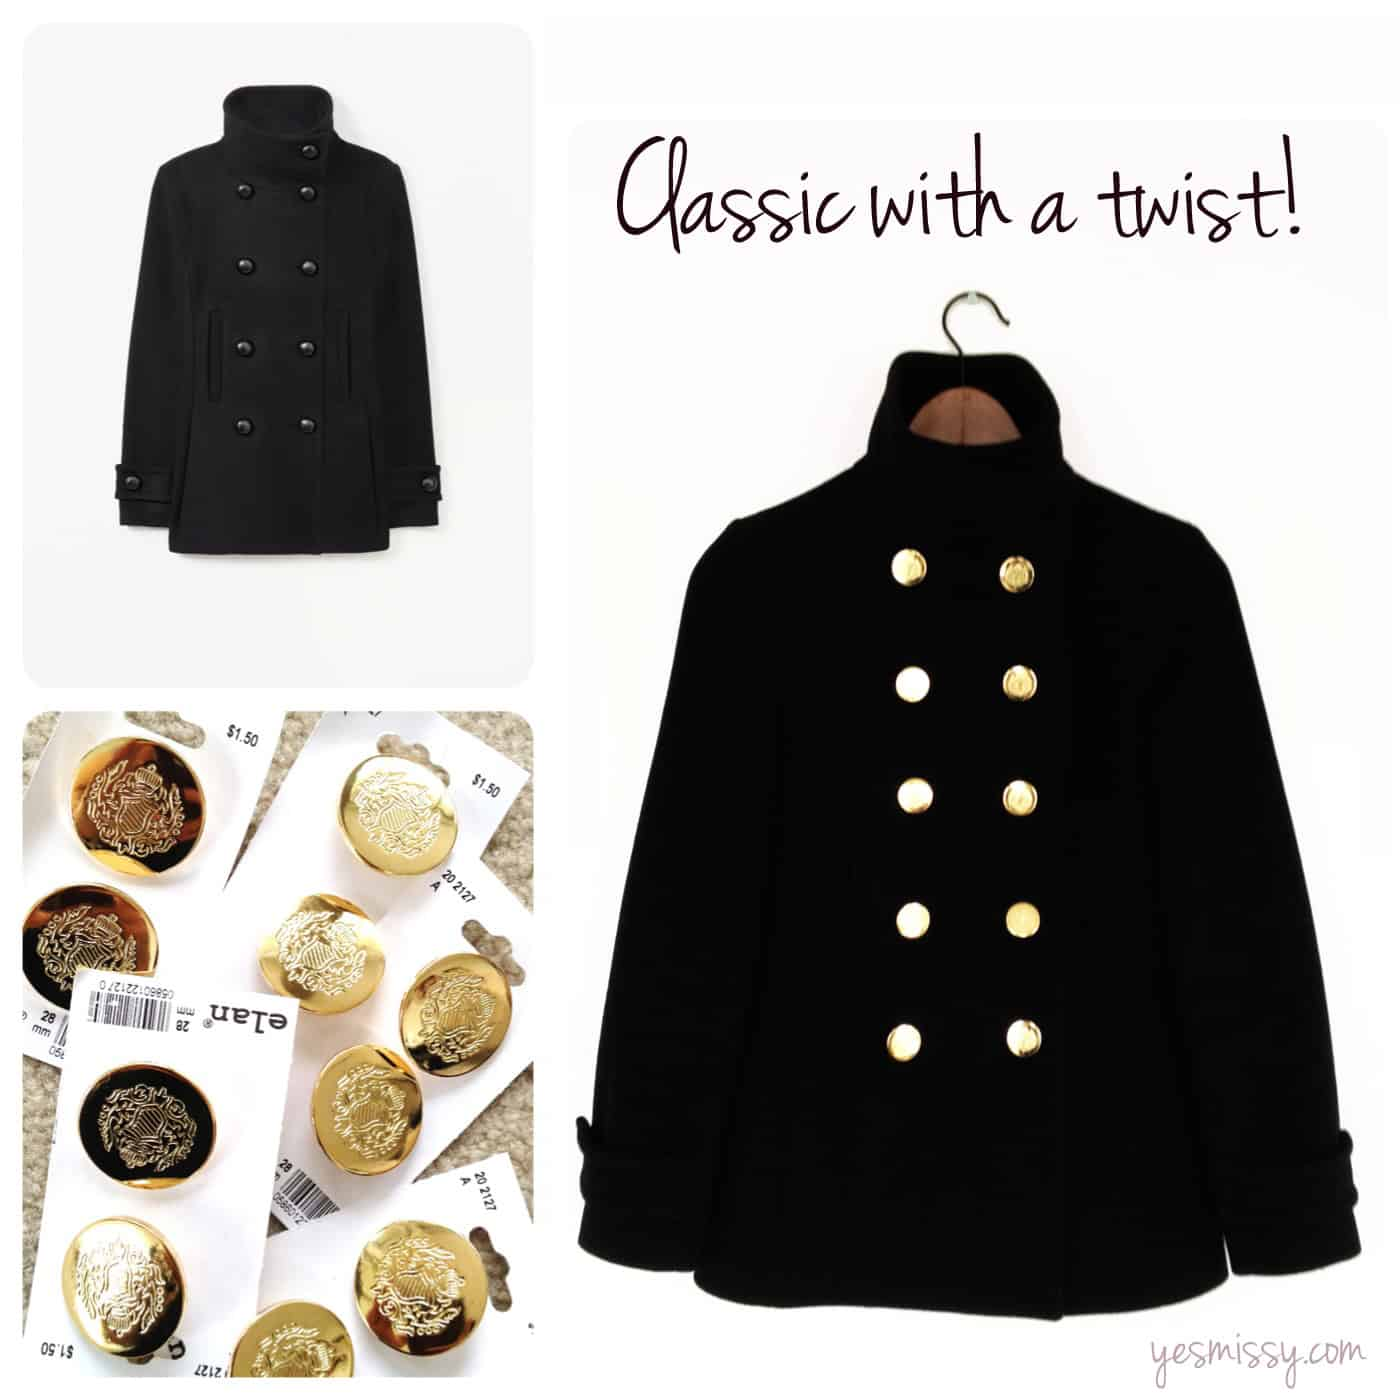 2 Ways to Restyle your coat or jacket